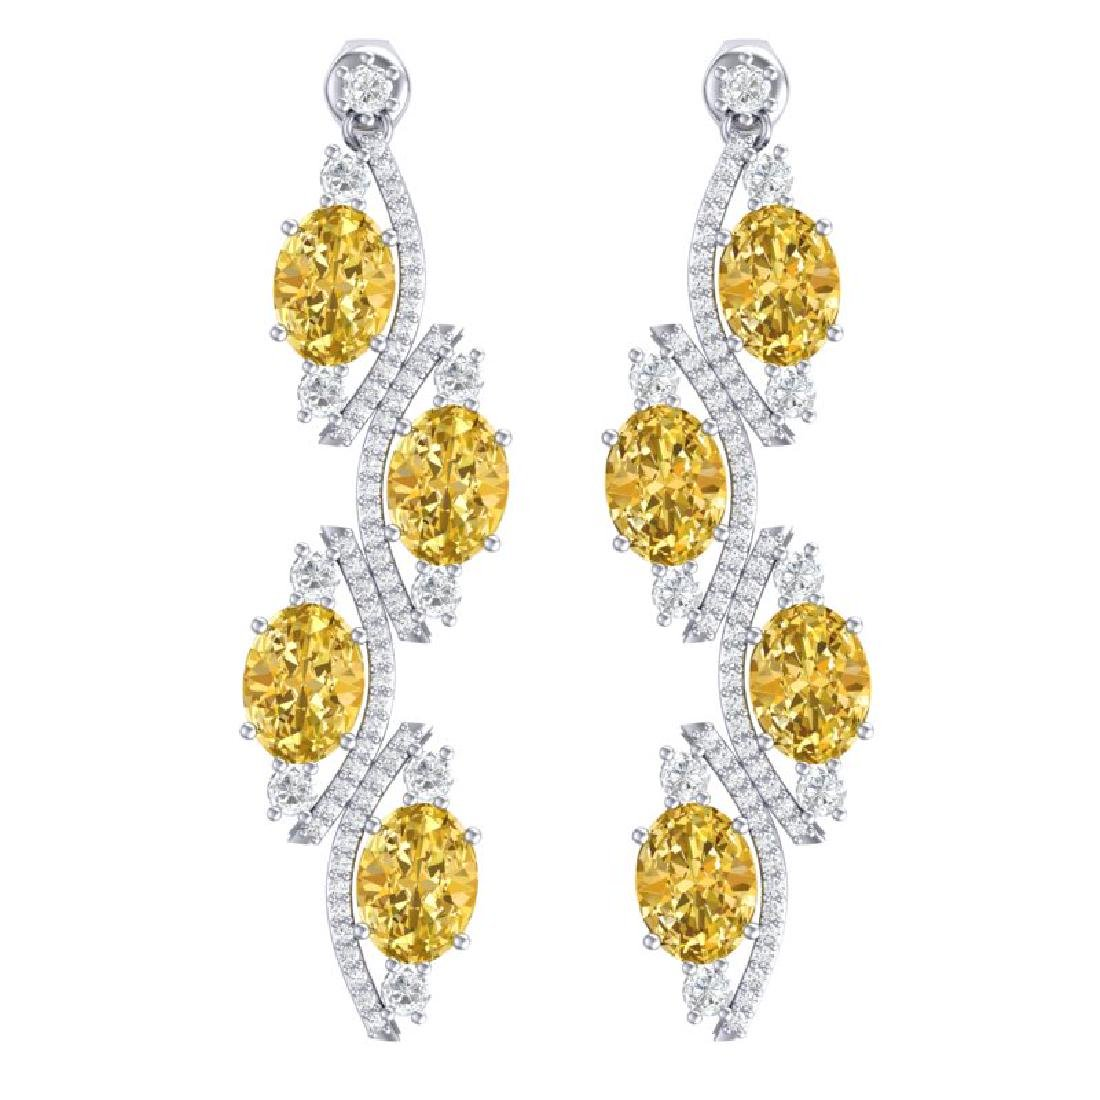 13.32 CTW Royalty Canary Citrine & VS Diamond Earrings